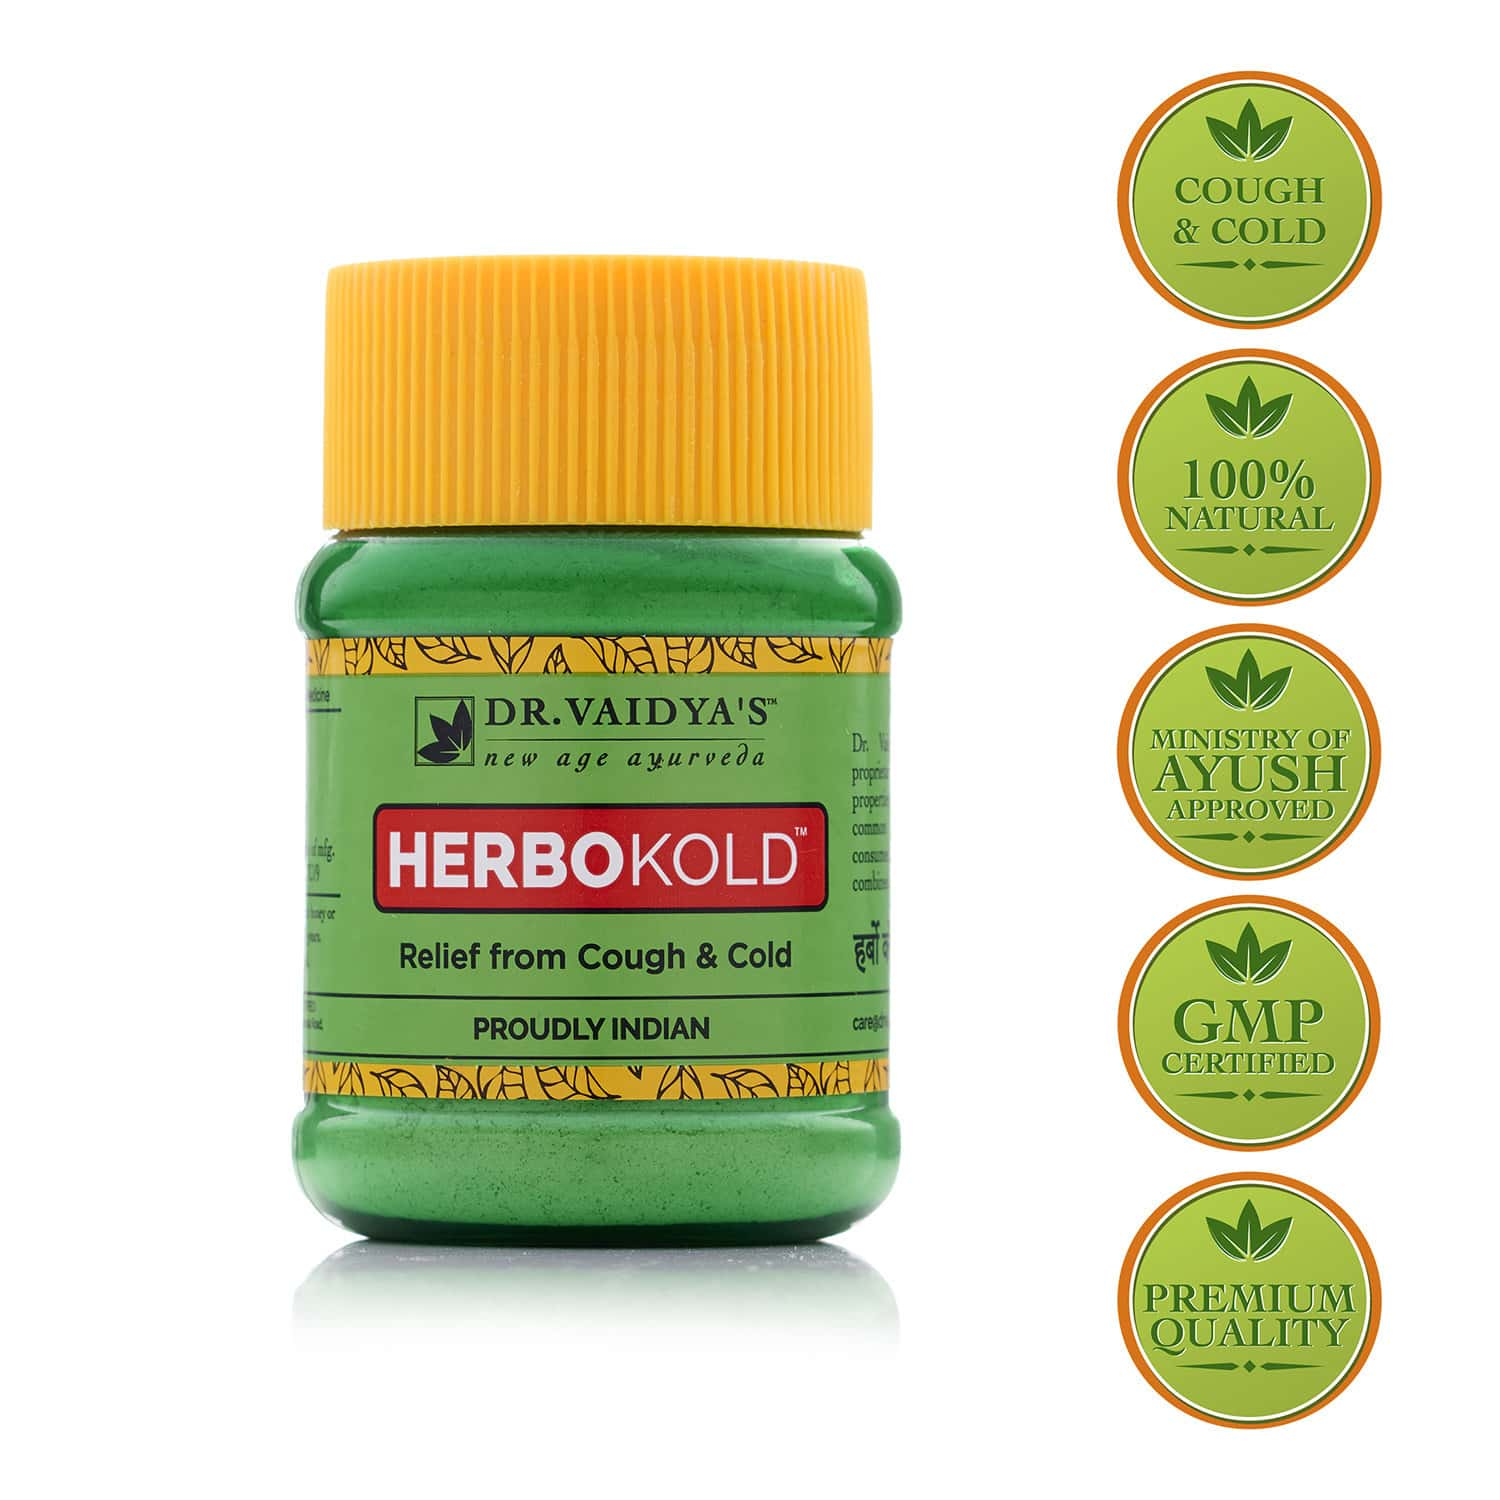 Dr. Vaidya's Herbokold | Ayurvedic Churna For Cold And Cough | 50g Each (pack Of 2)